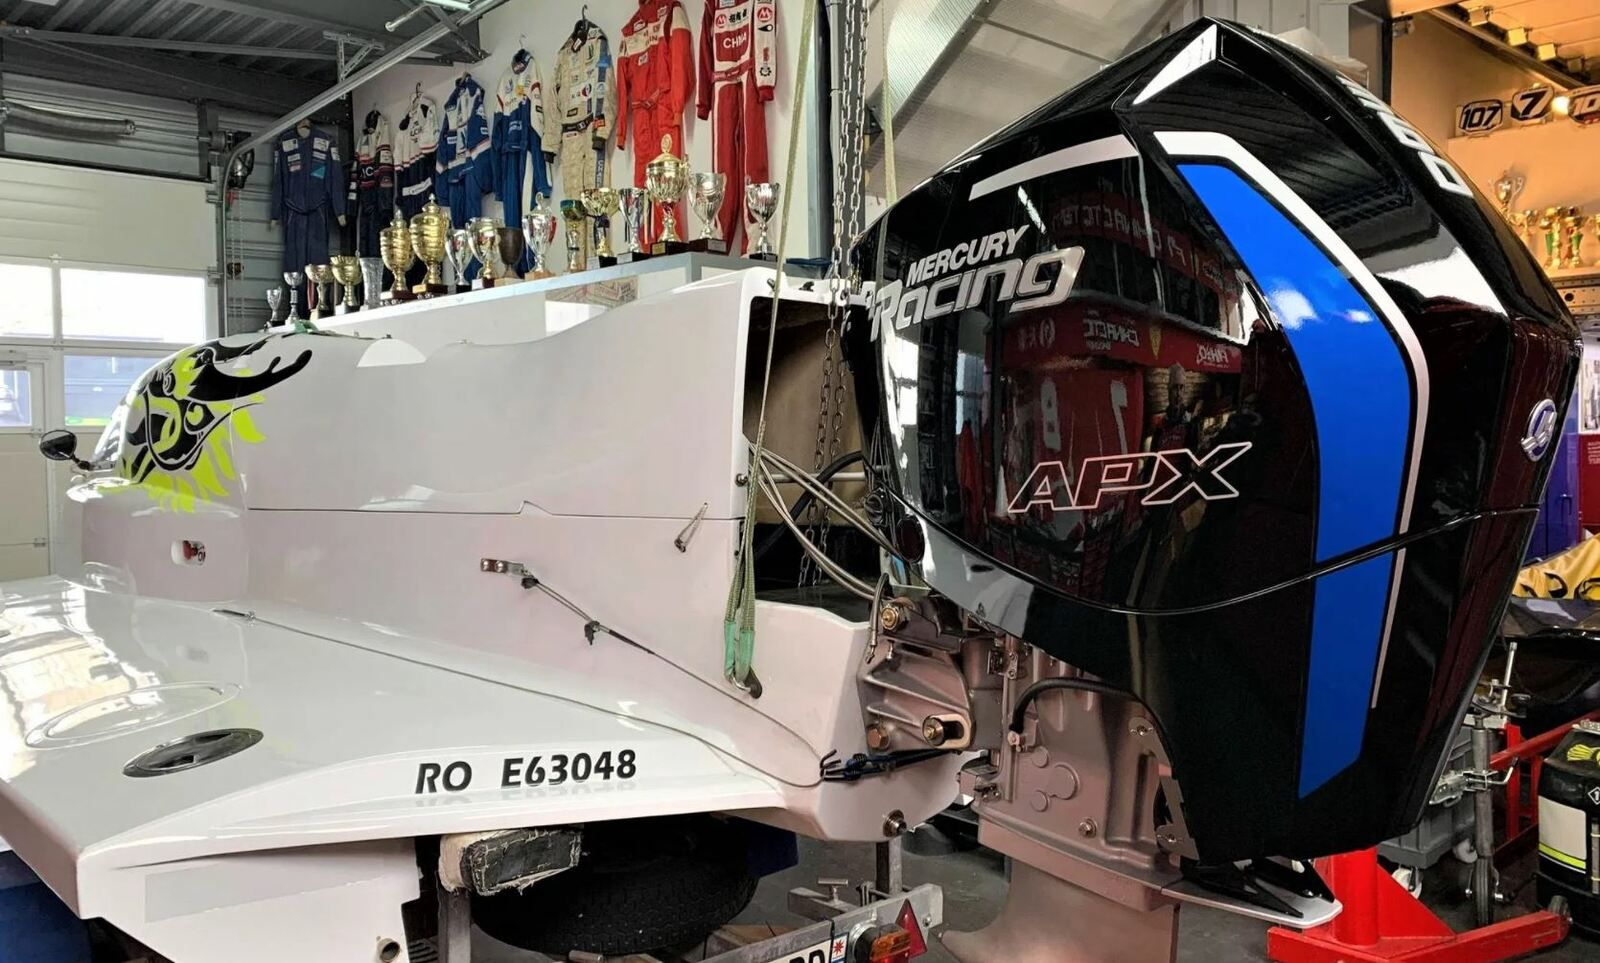 The first European Mercury Racing 360 APX outboard engine, received in La Rochelle France